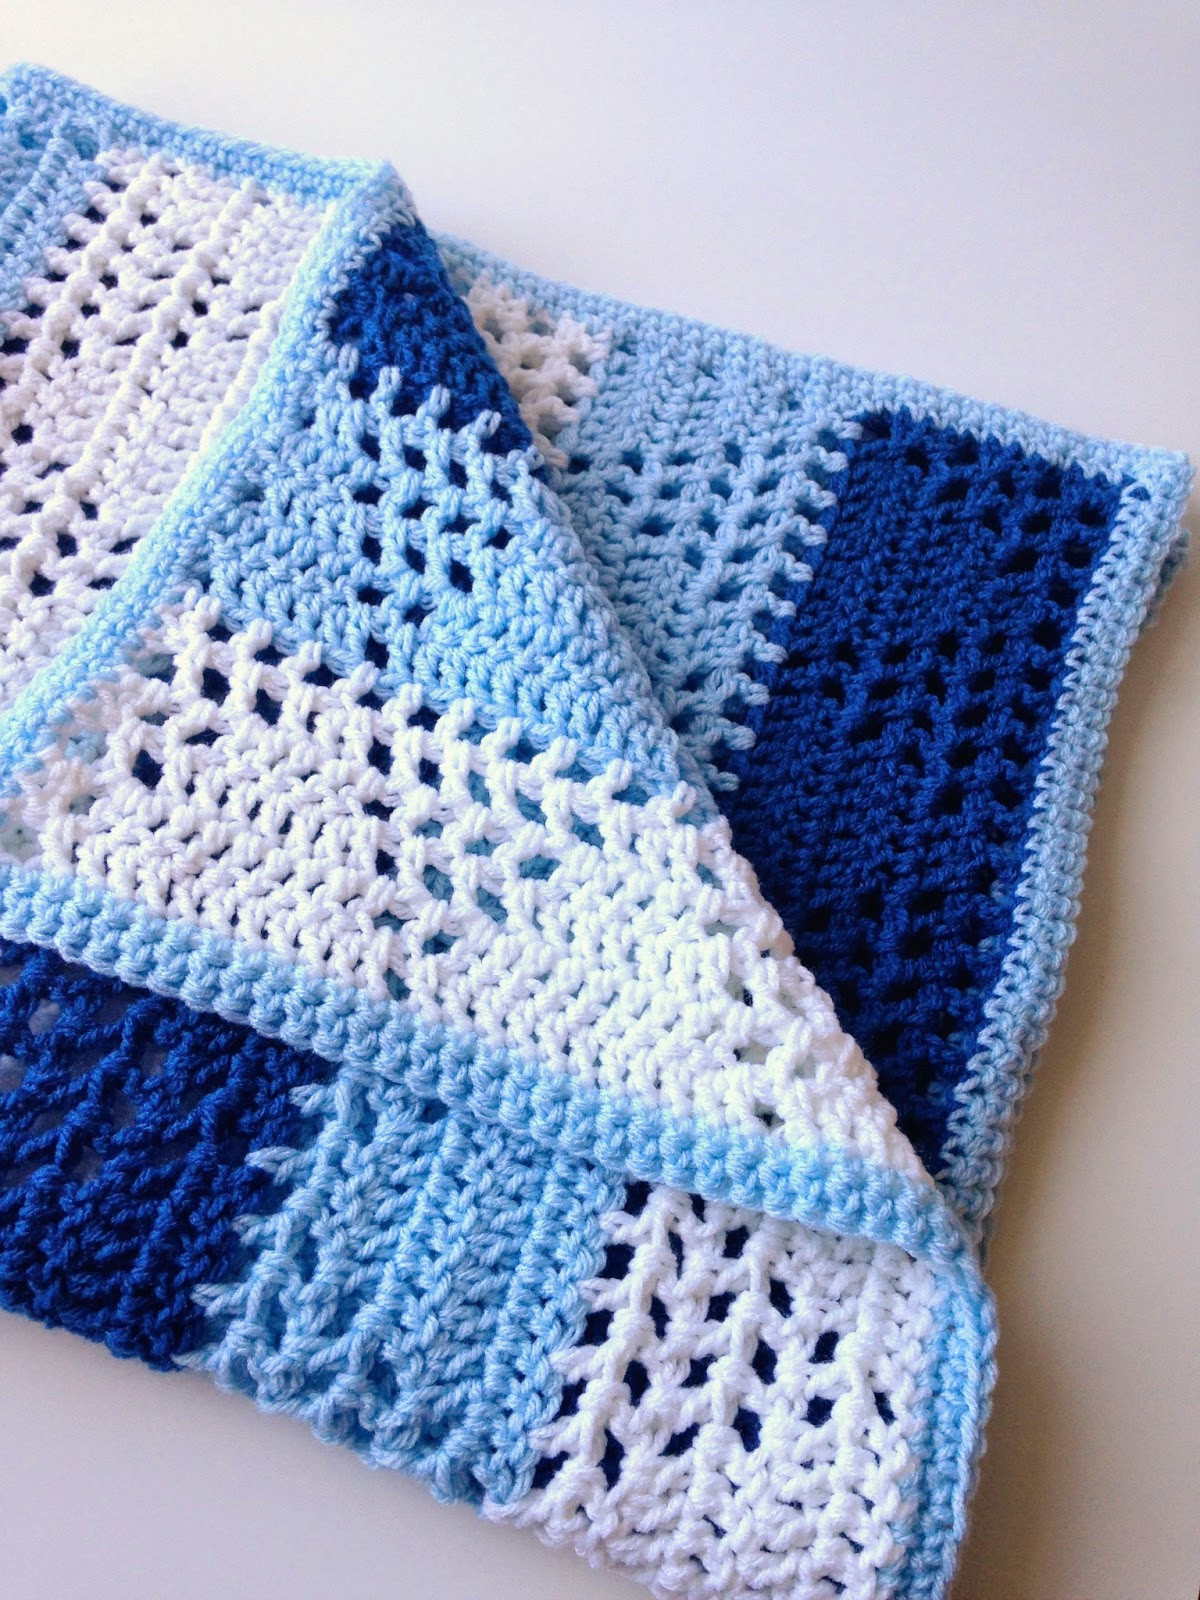 Baby Boy Crochet Blanket Patterns Awesome 5 Little Monsters Triangles & Stripes Baby Blanket Of Baby Boy Crochet Blanket Patterns New Free Baby Boy Crochet Blanket Patterns